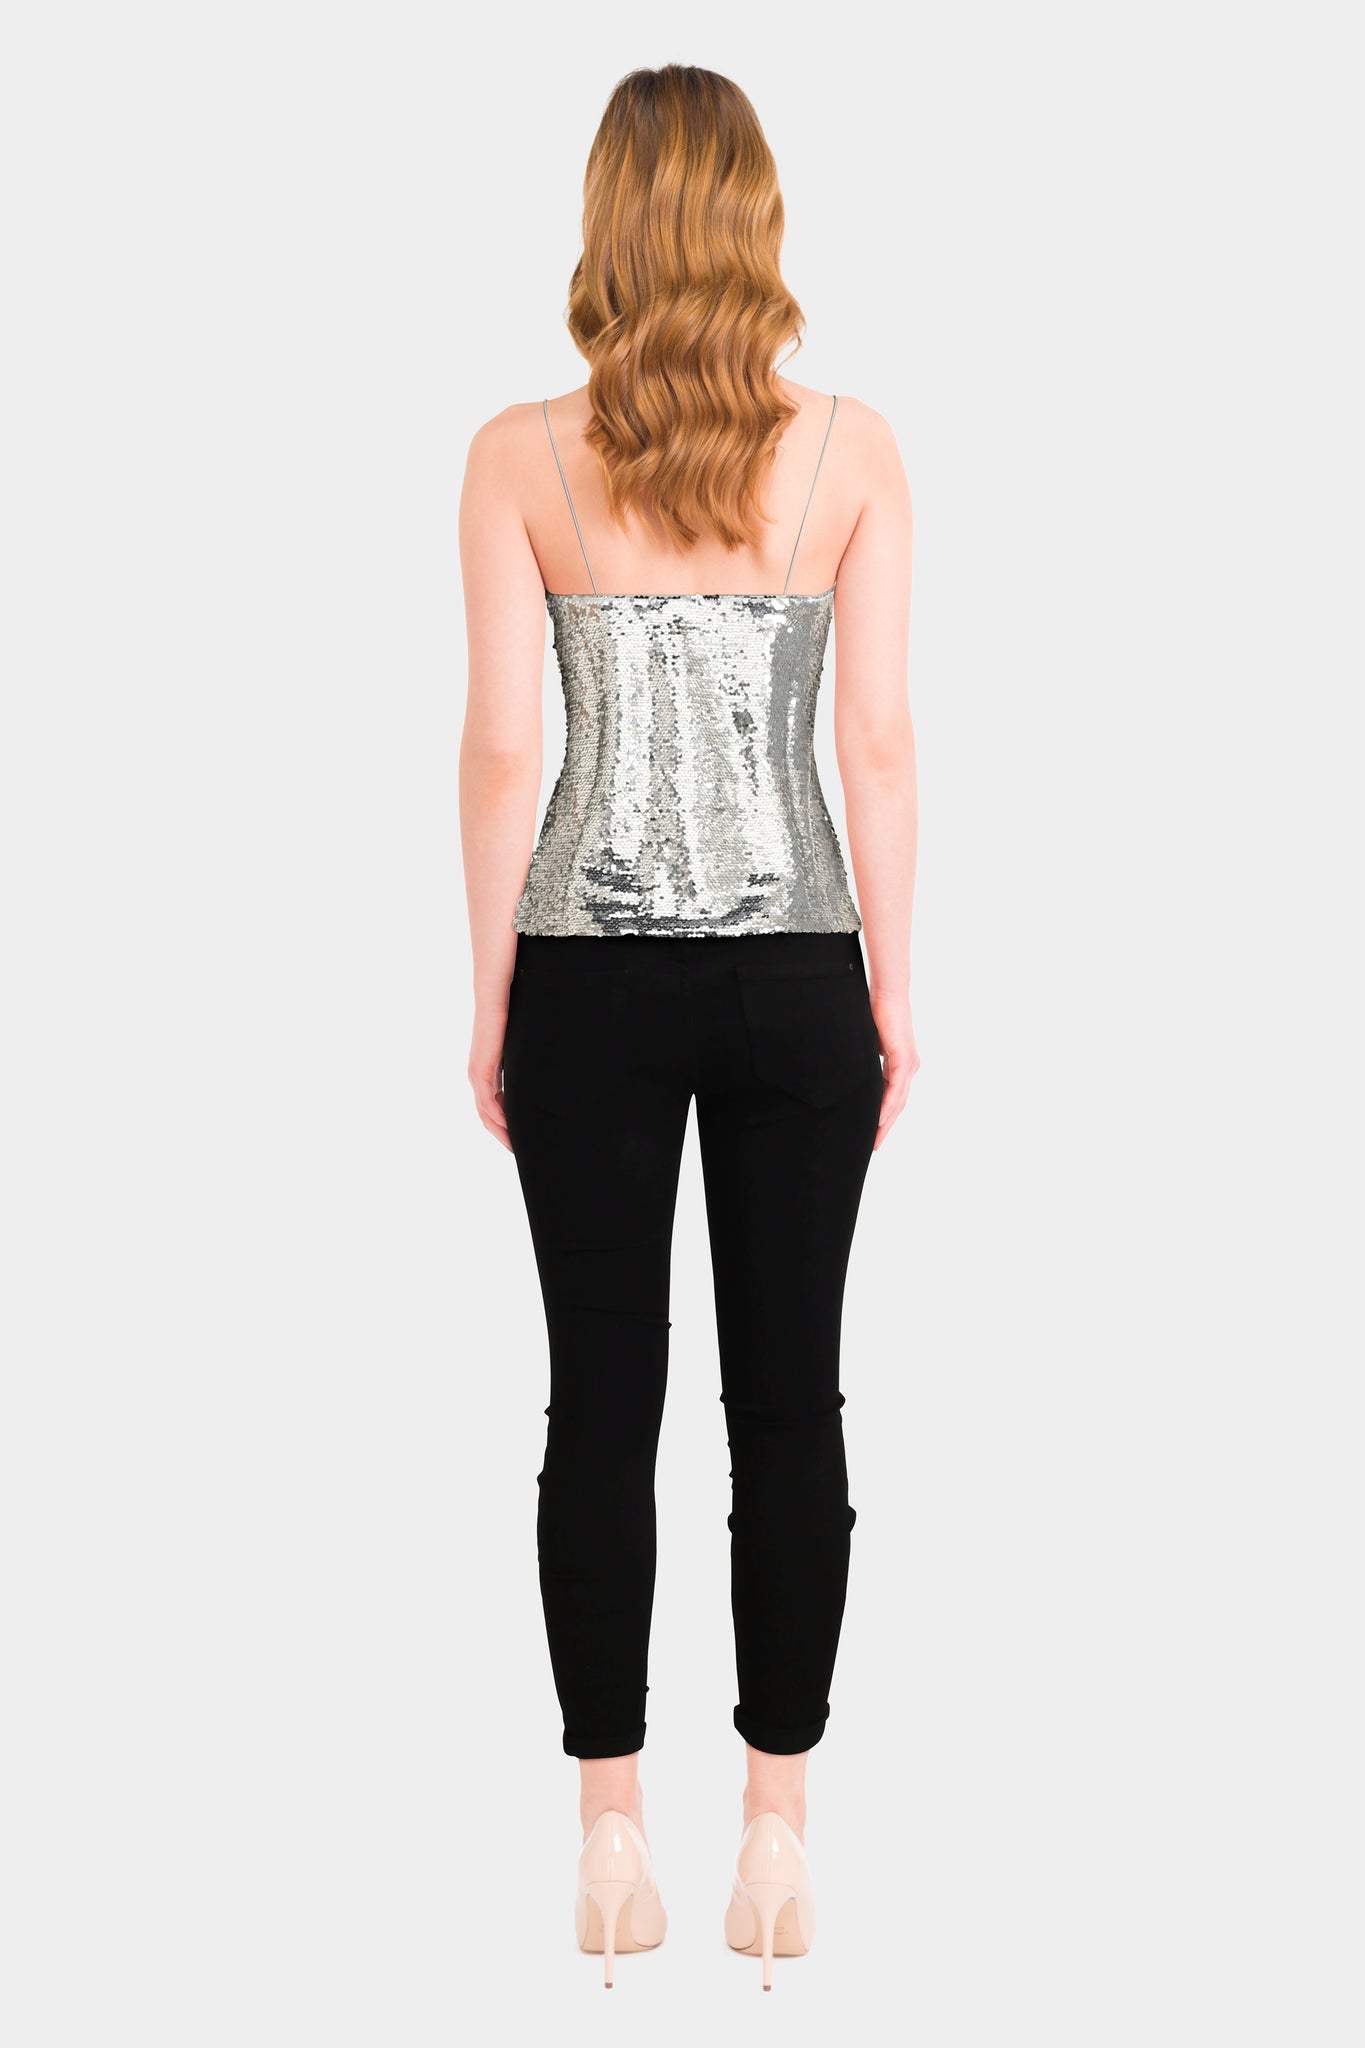 High Waist Skinny Jeans & Sequined Cami